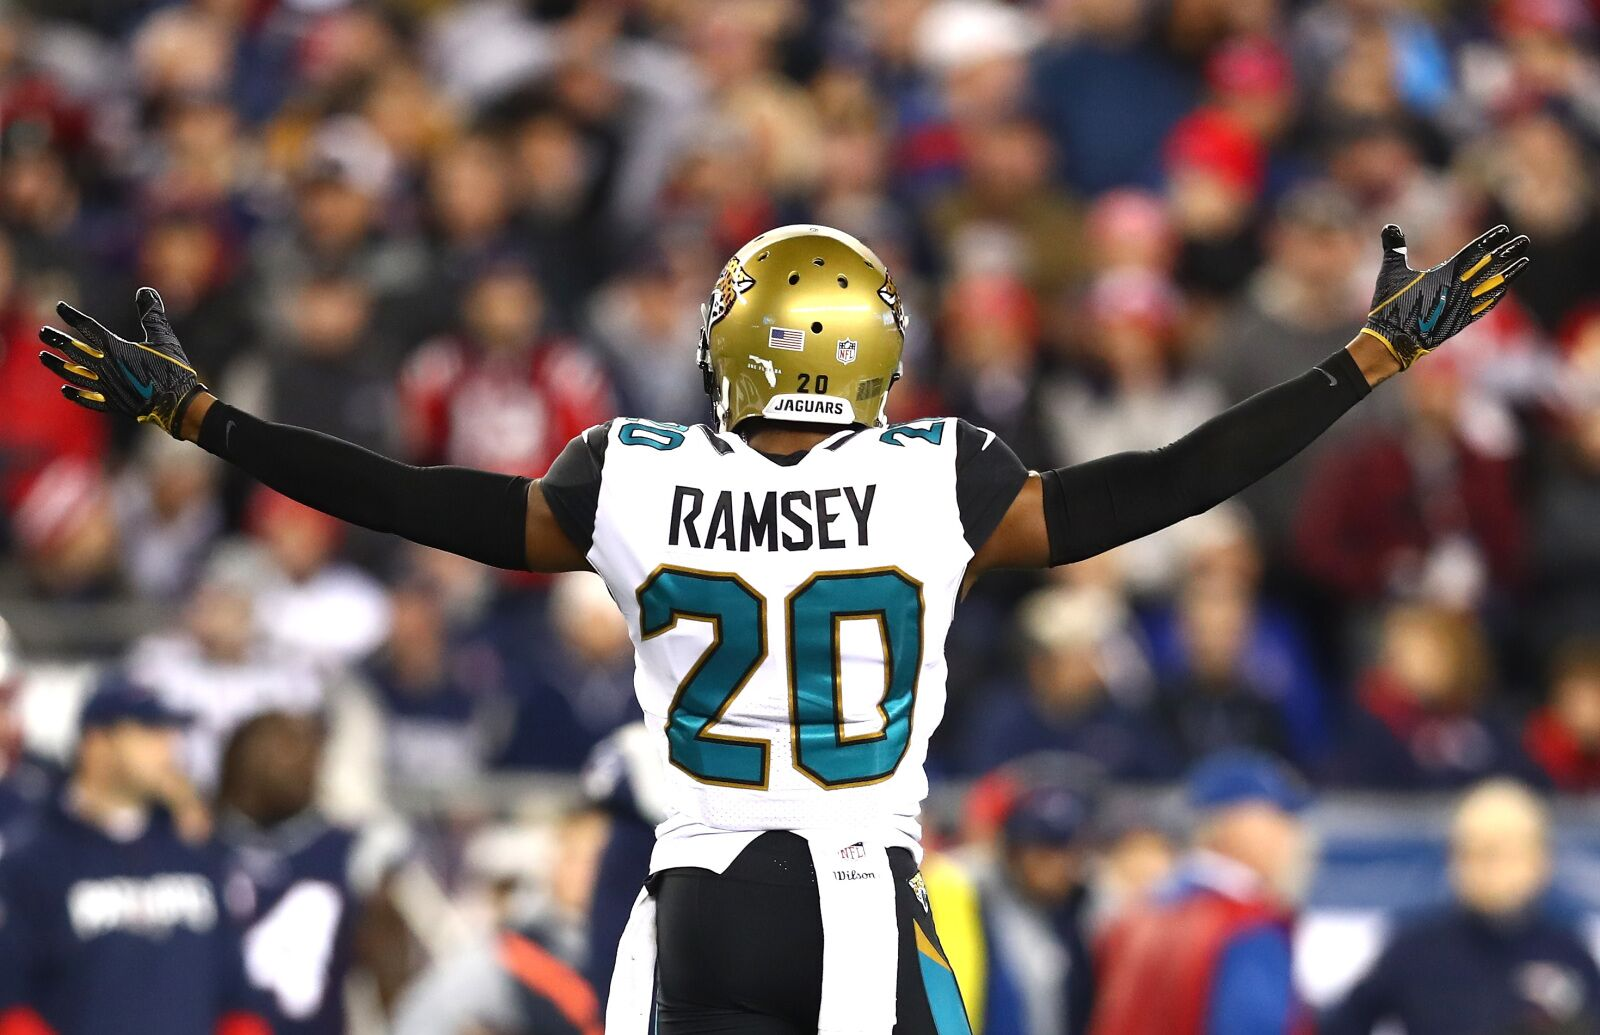 brand new 5f8f7 566f0 Jalen Ramsey right to clap back at comments from Jaguars ...